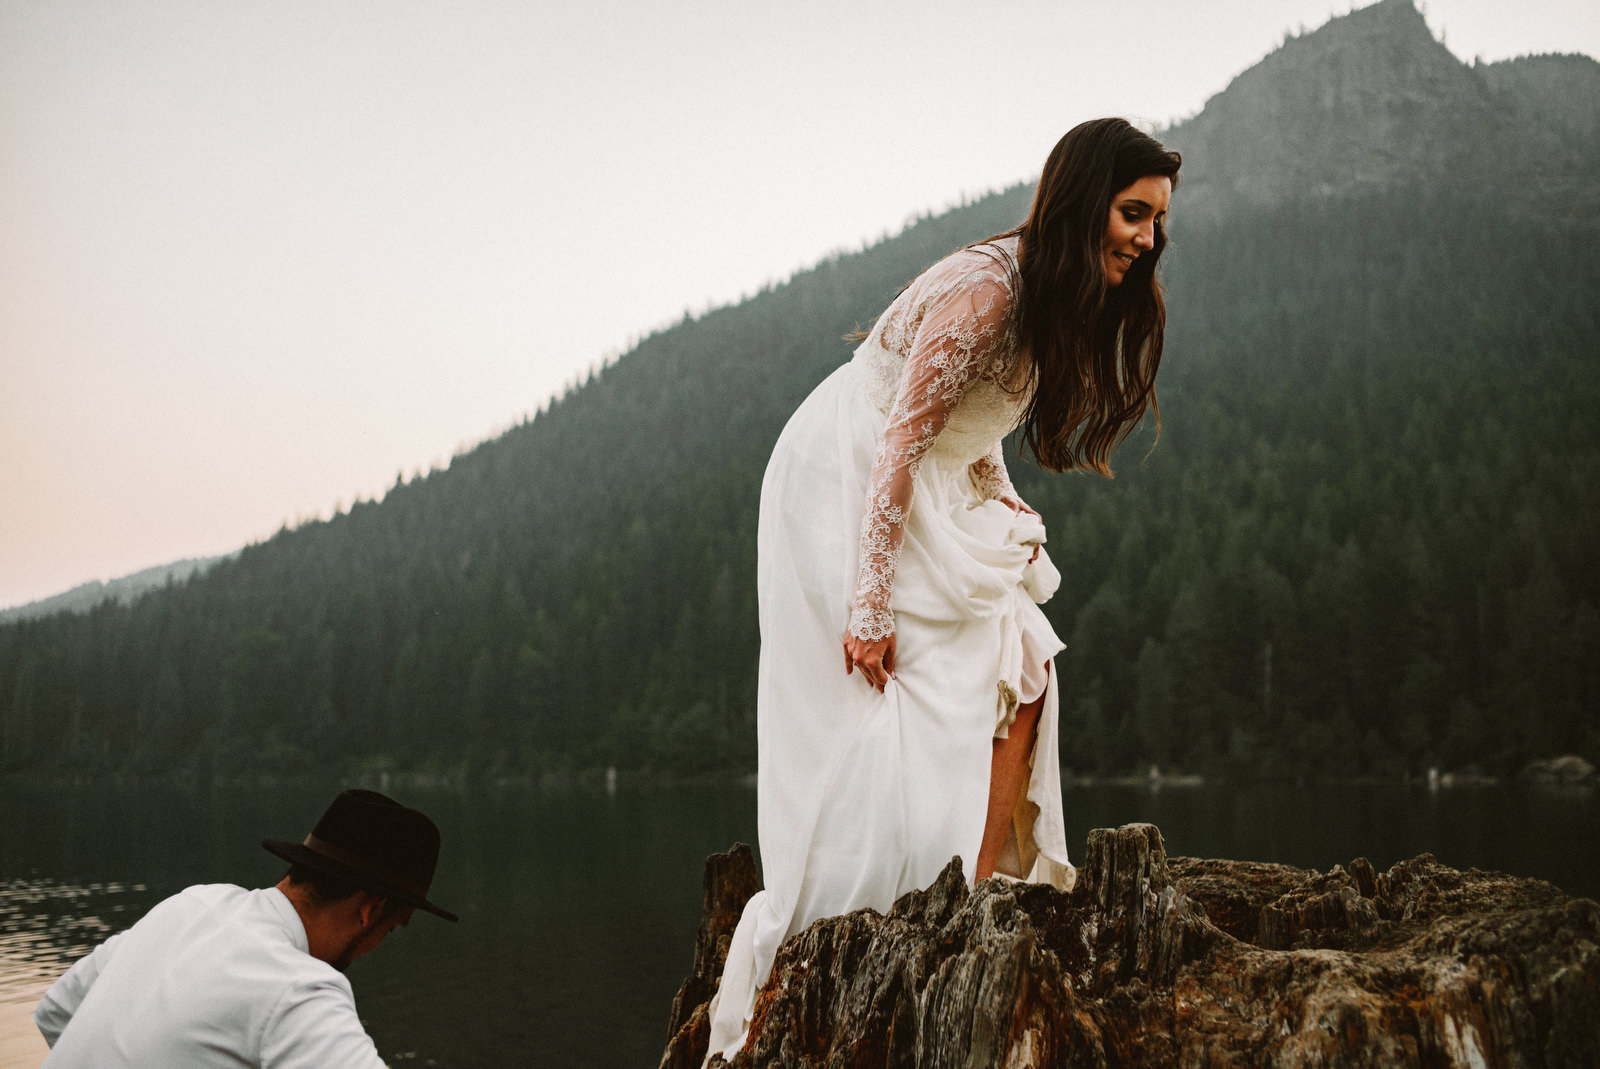 athena-and-camron-seattle-elopement-wedding-benj-haisch-rattlesnake-lake-christian-couple-goals86